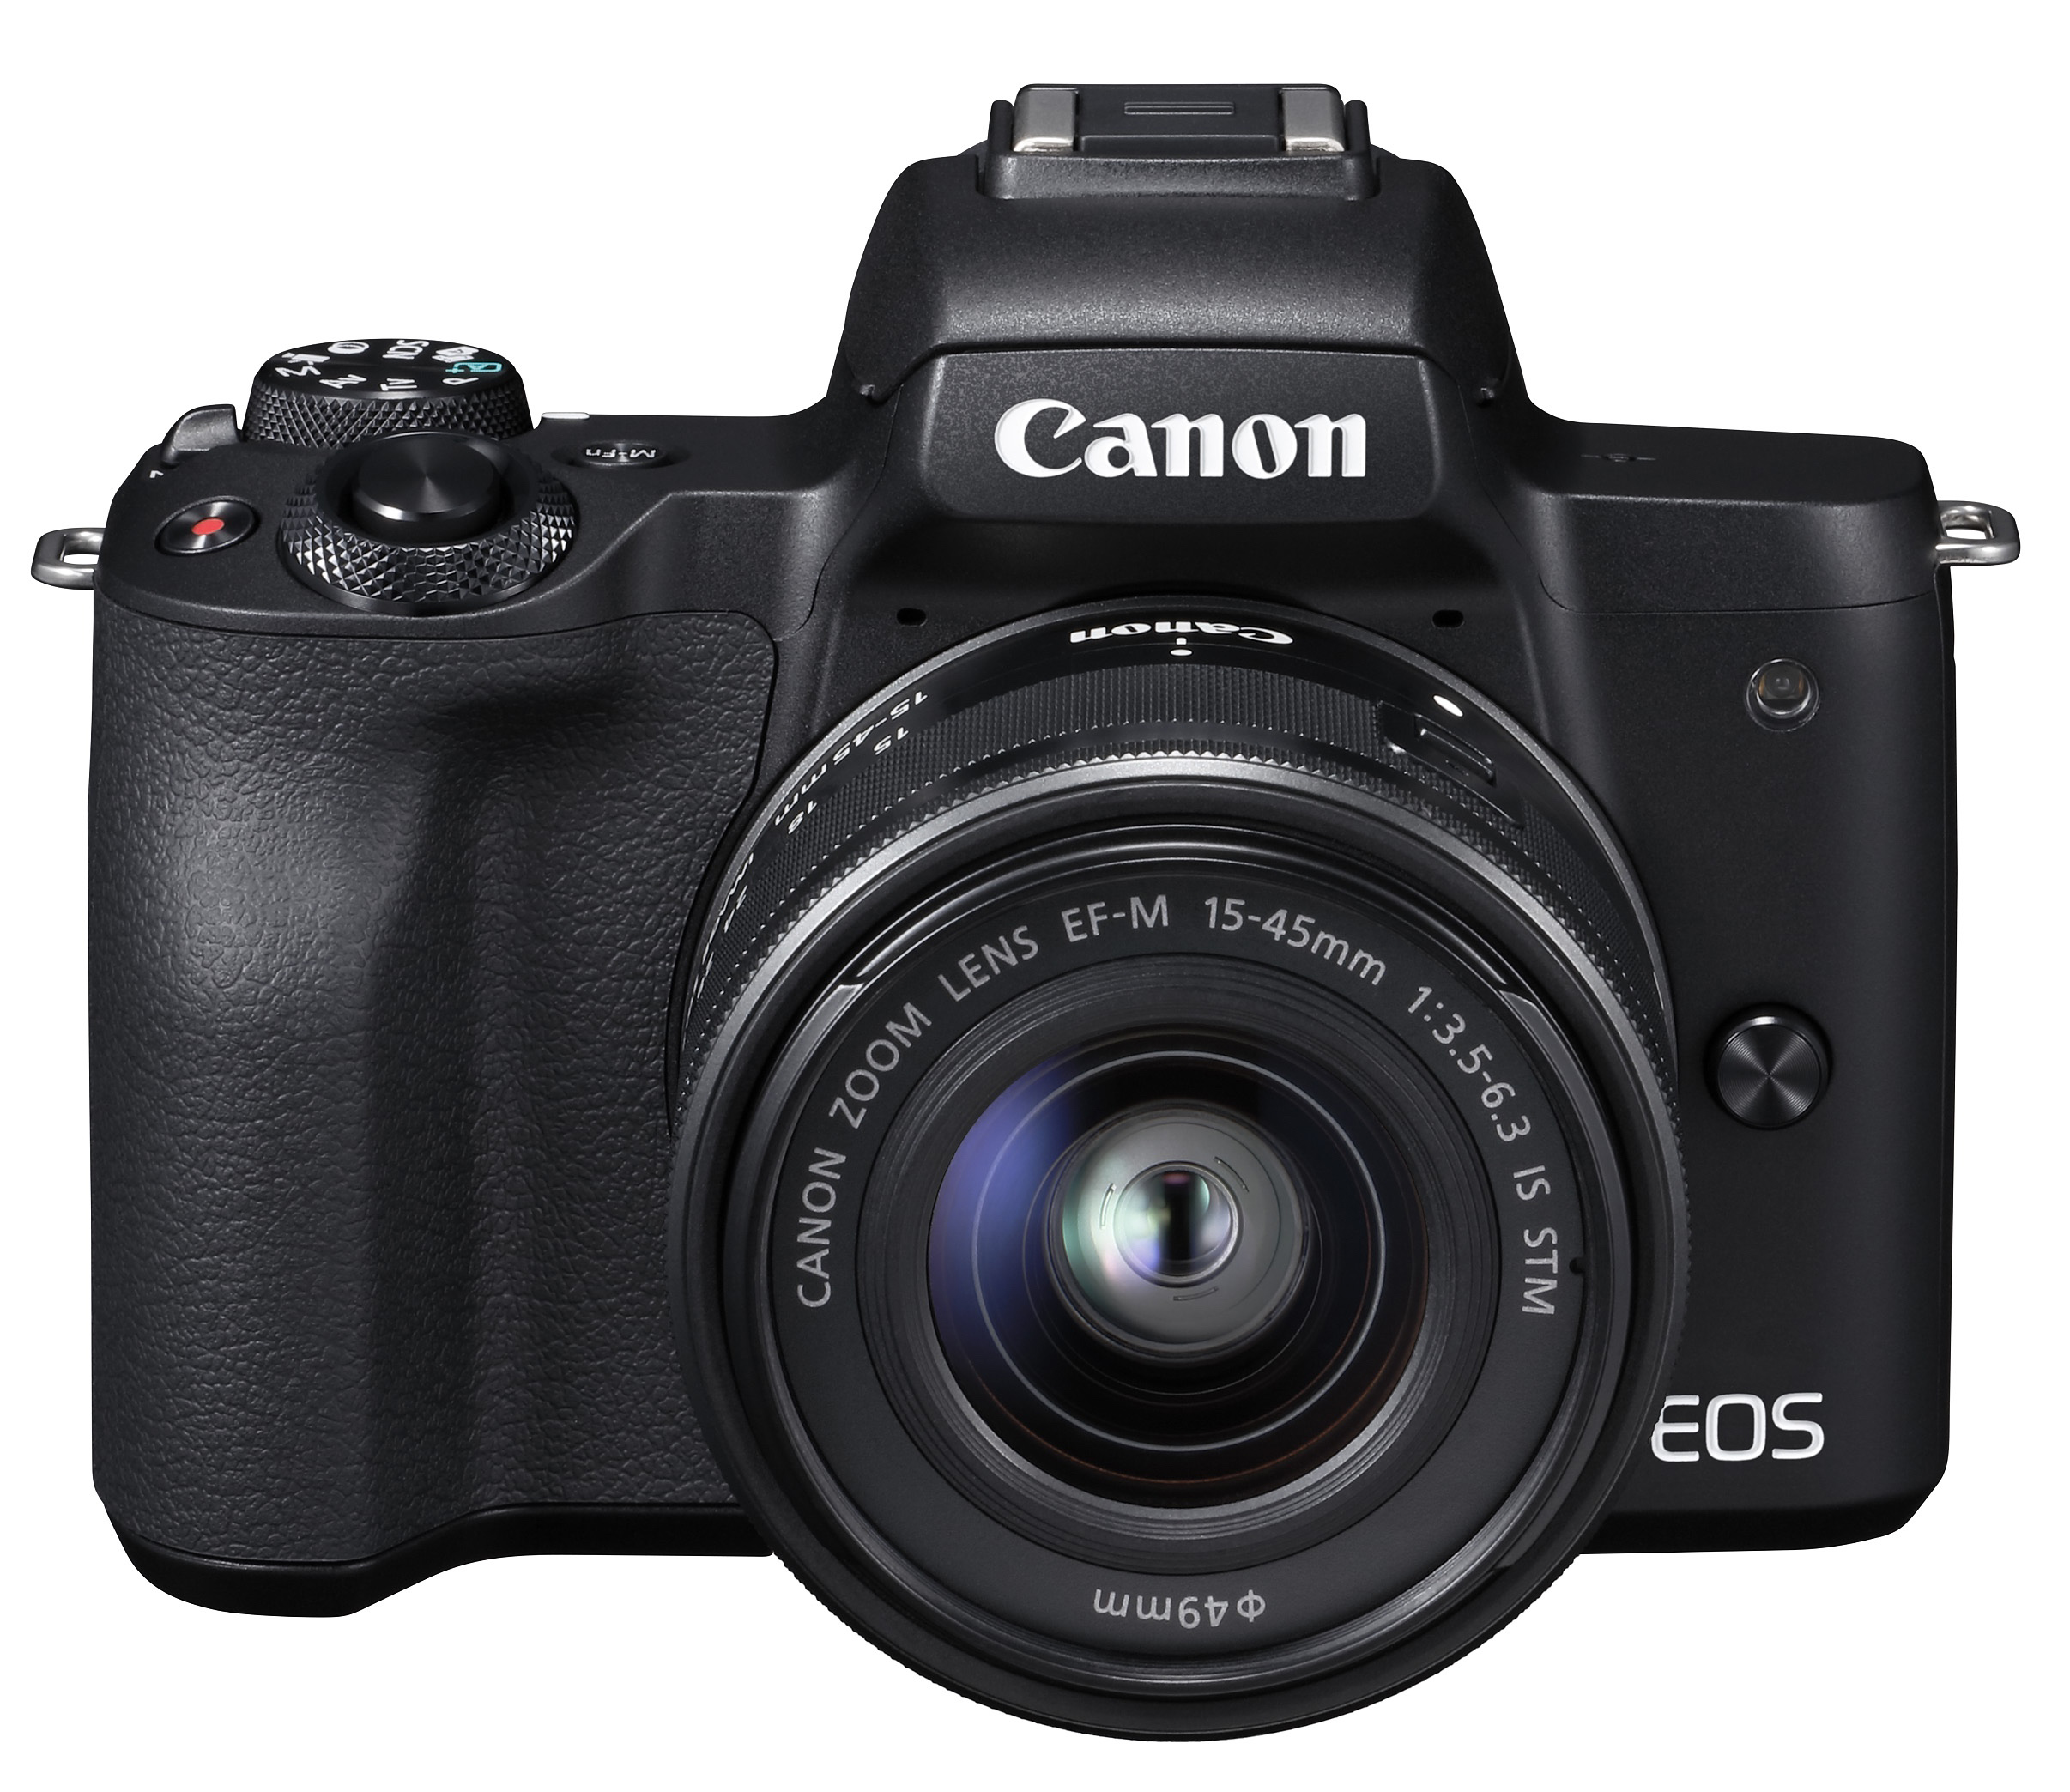 Designed For Todays Modern Adventurers The EOS M50 Is Canons First Mirrorless Camera To Feature 4K Movie Capability A Vari Angle Touchscreen And